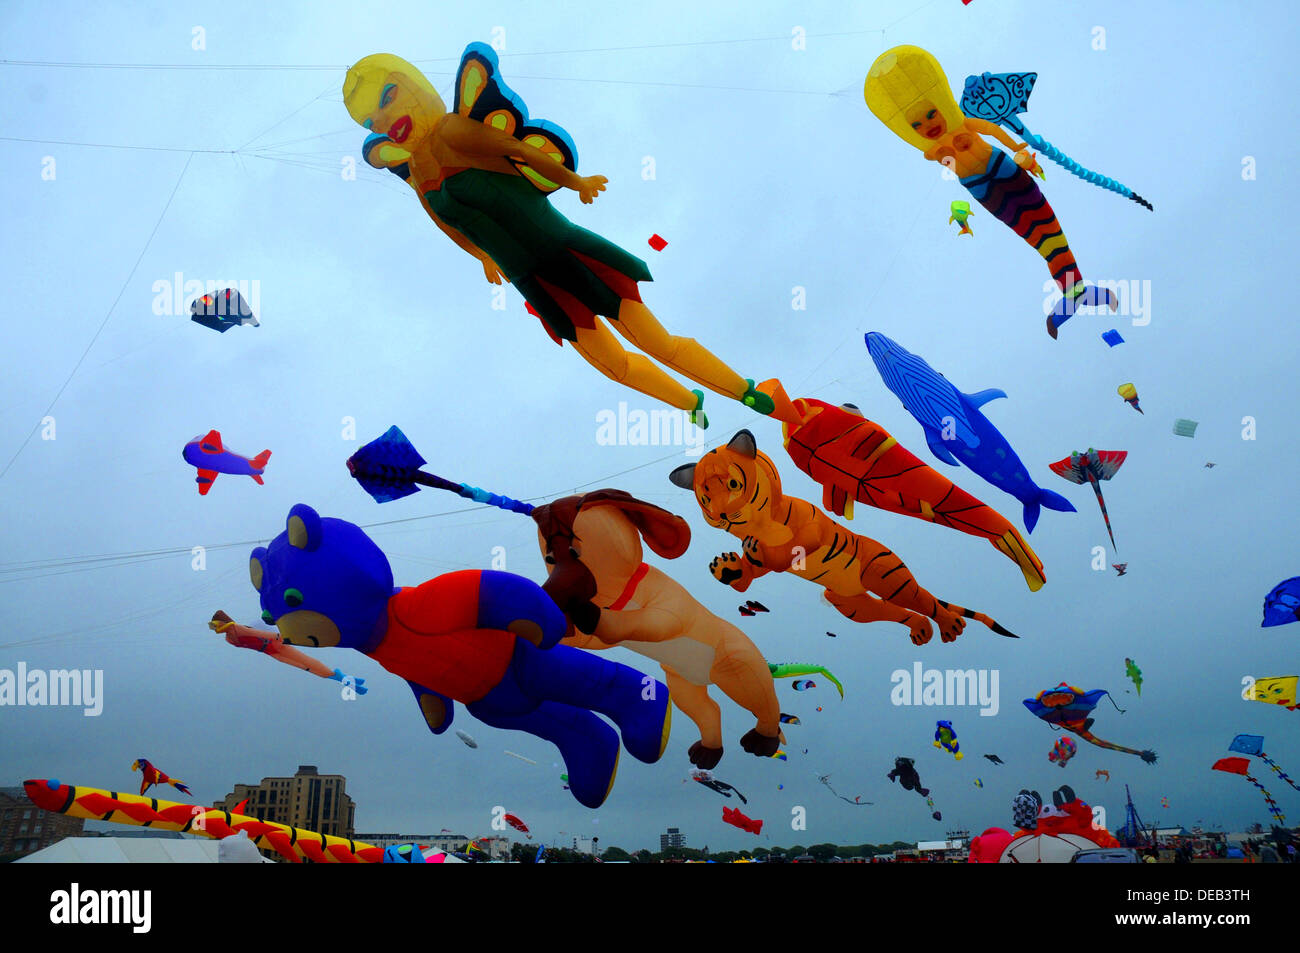 THE ANNUAL KITE FESTIVAL AT SOUTHSEA, HAMPSHIRE AUGUST 2013 - Stock Image